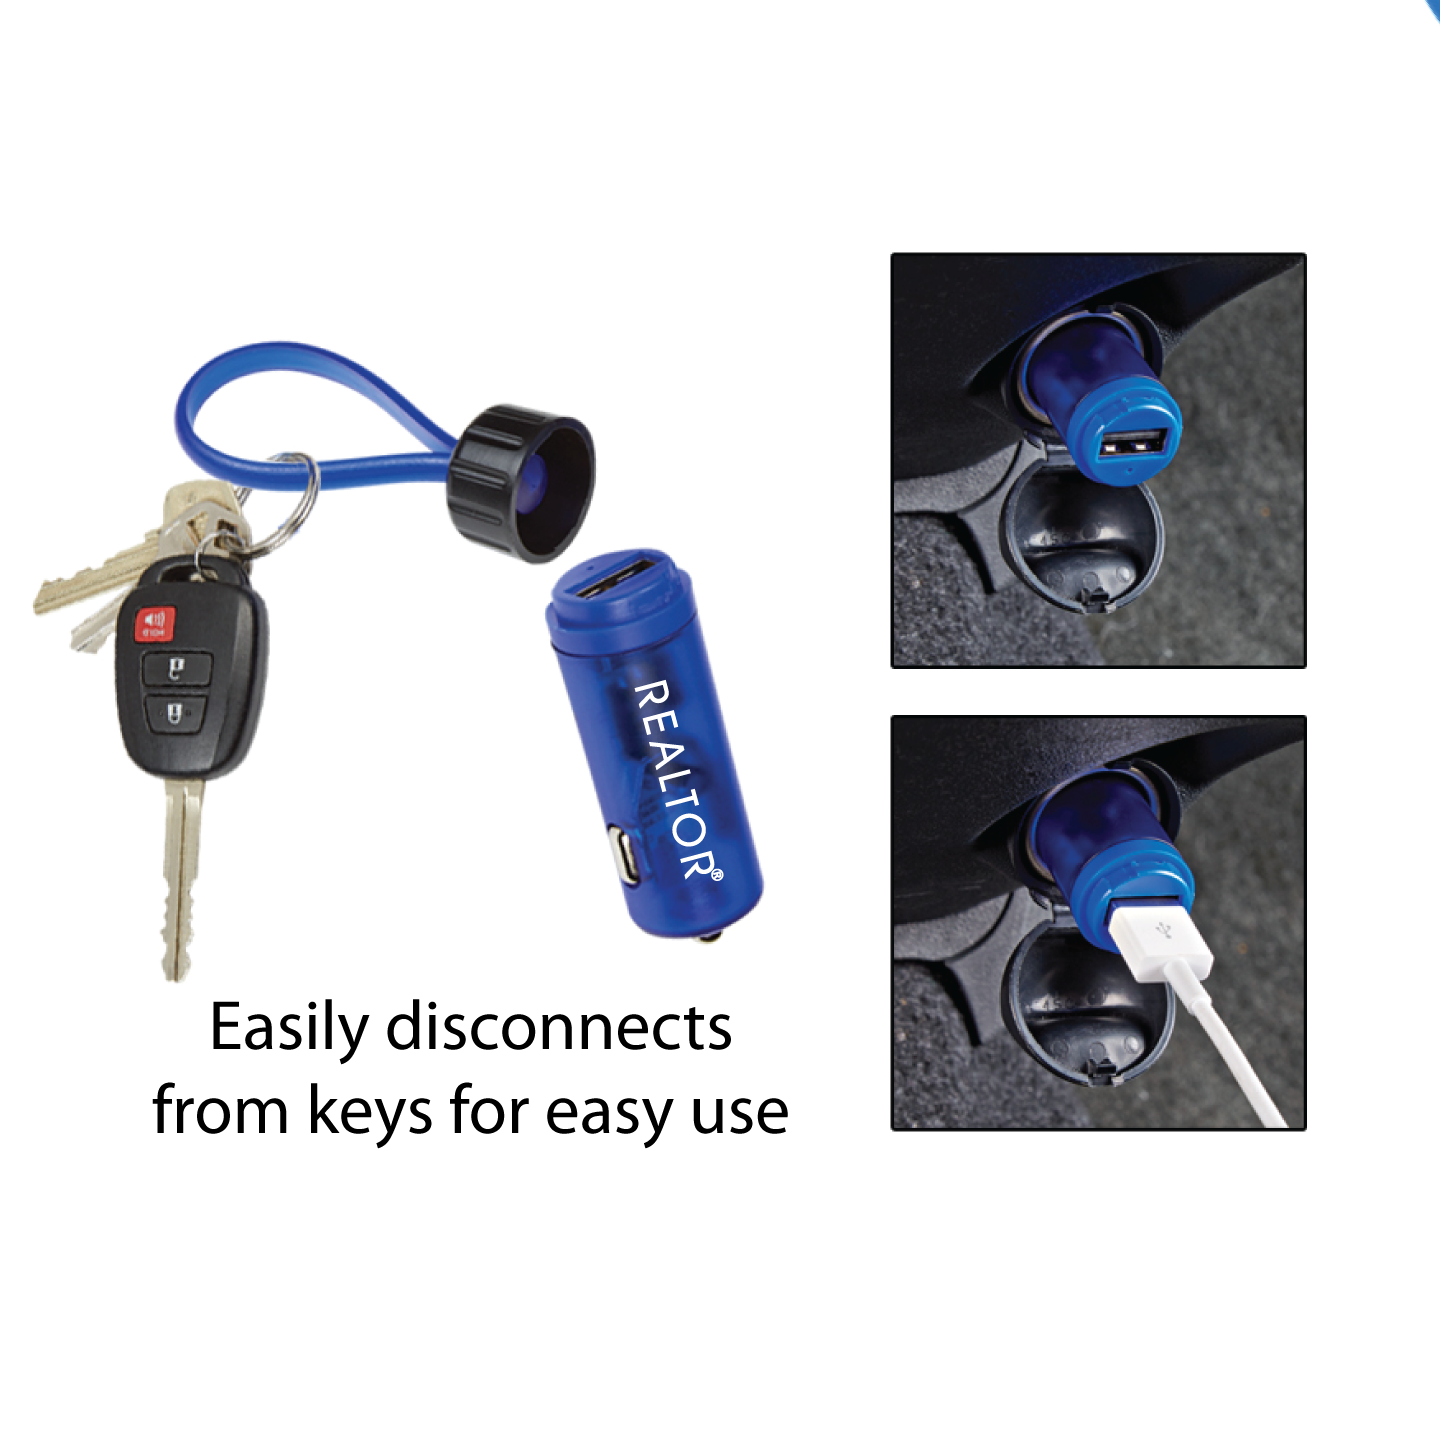 USB Car Charger Key Strap - RTS4710